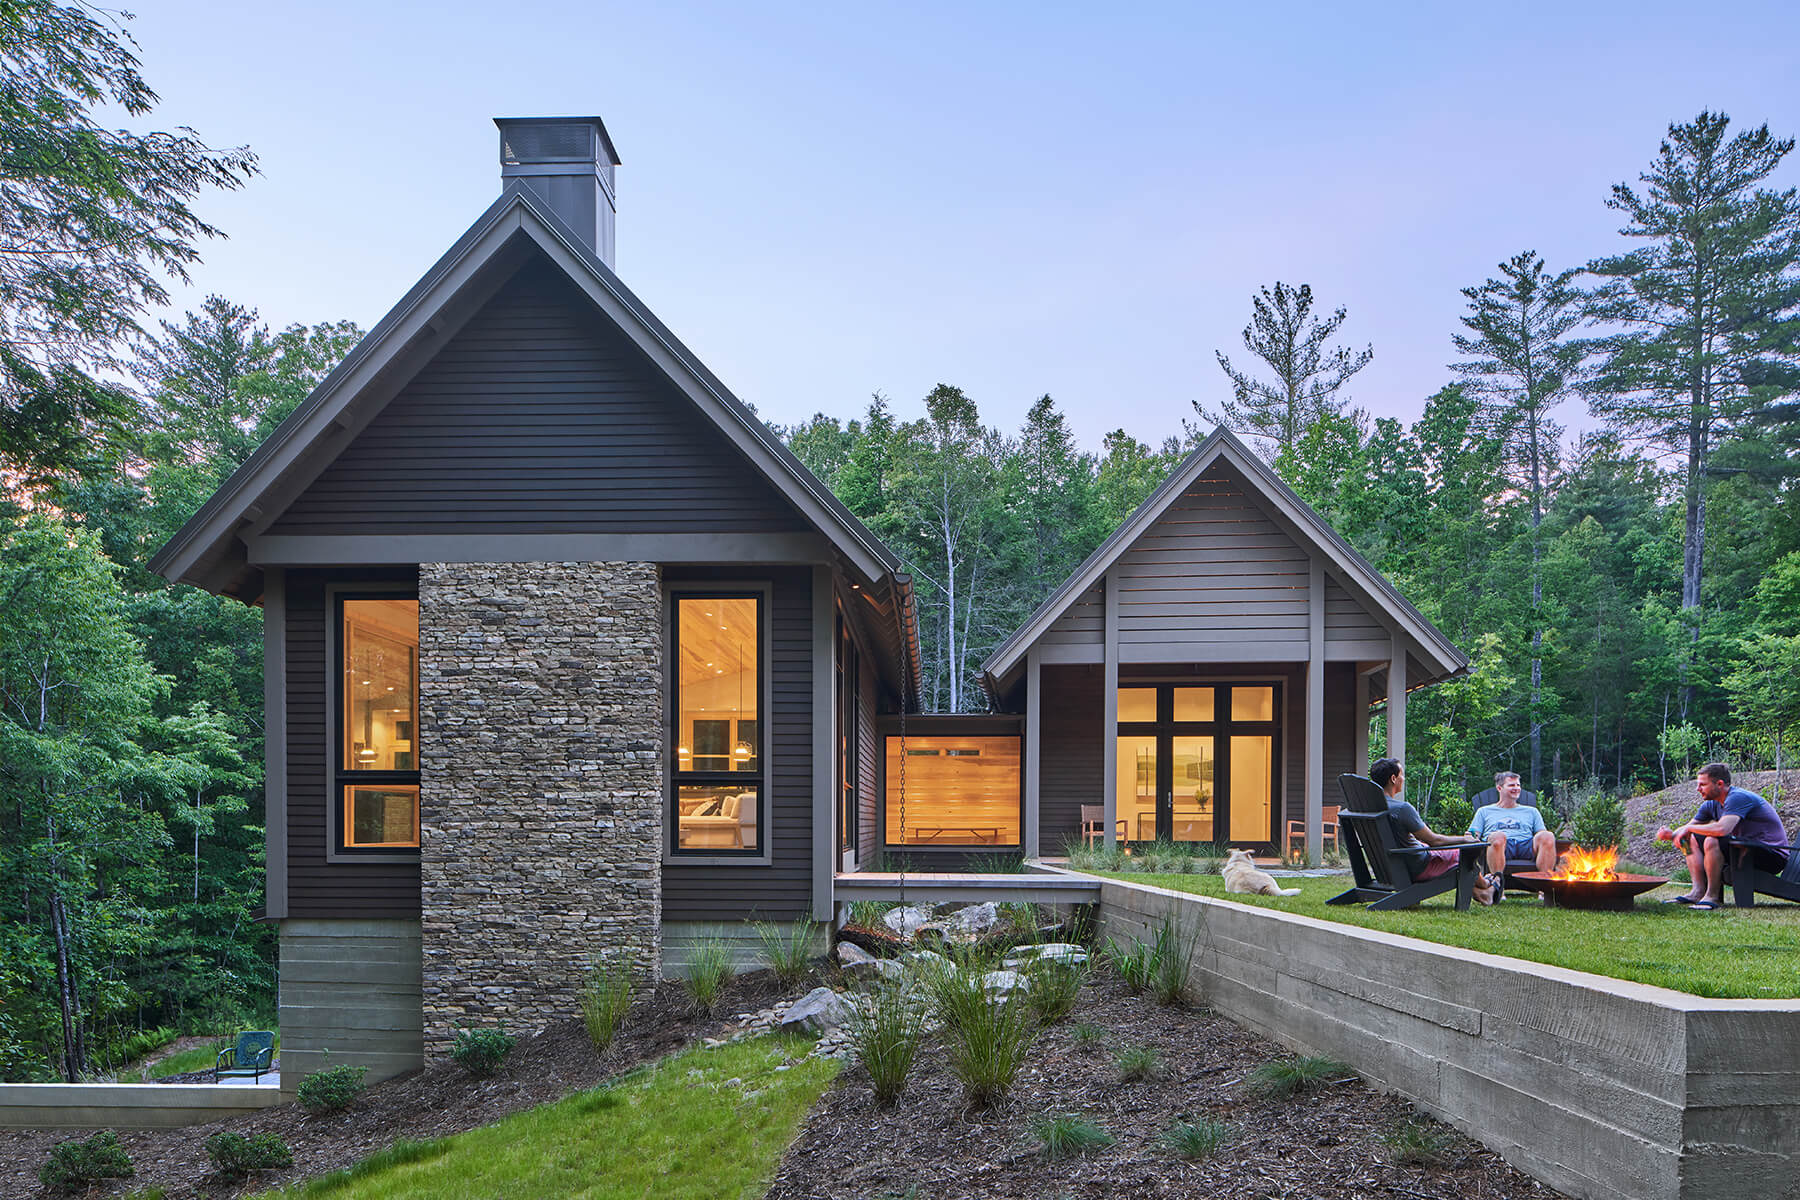 The Camp Campos home exterior architectural home design in Western North Carolina